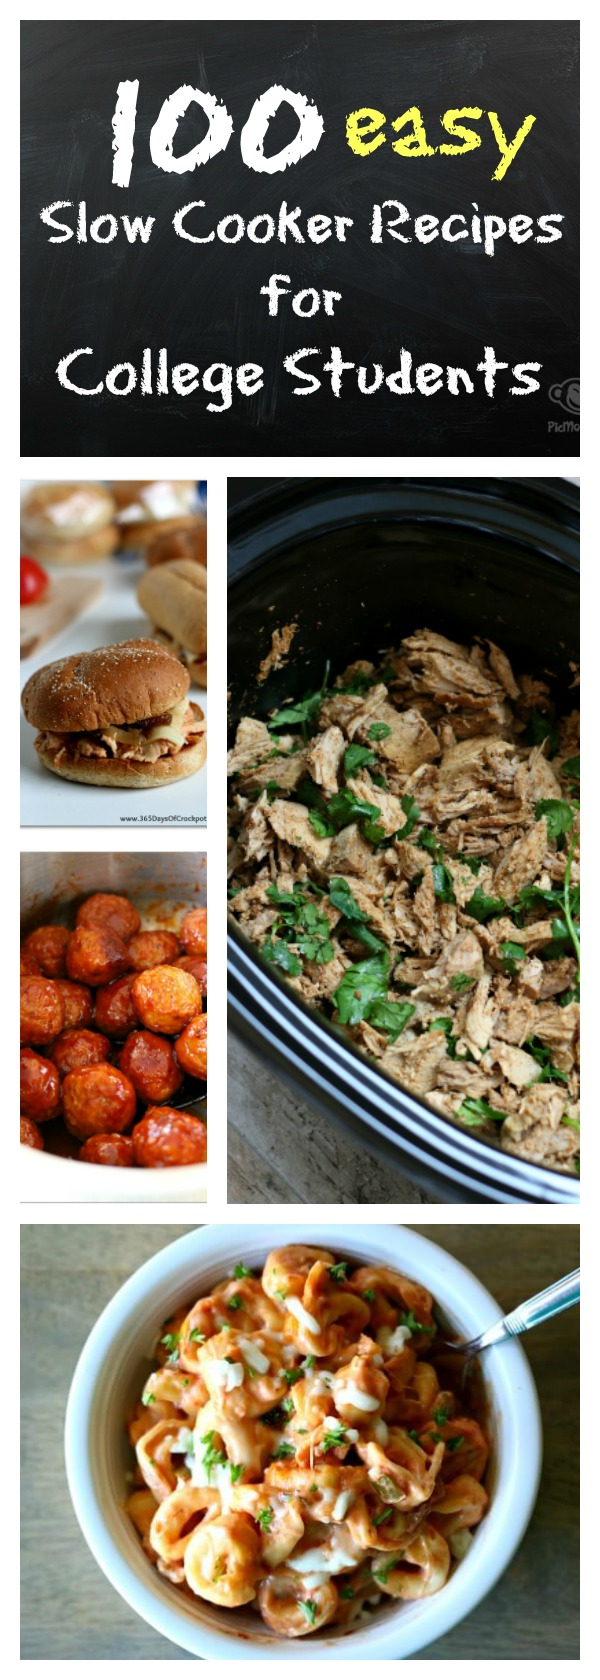 100 slow cooker recipes for college students